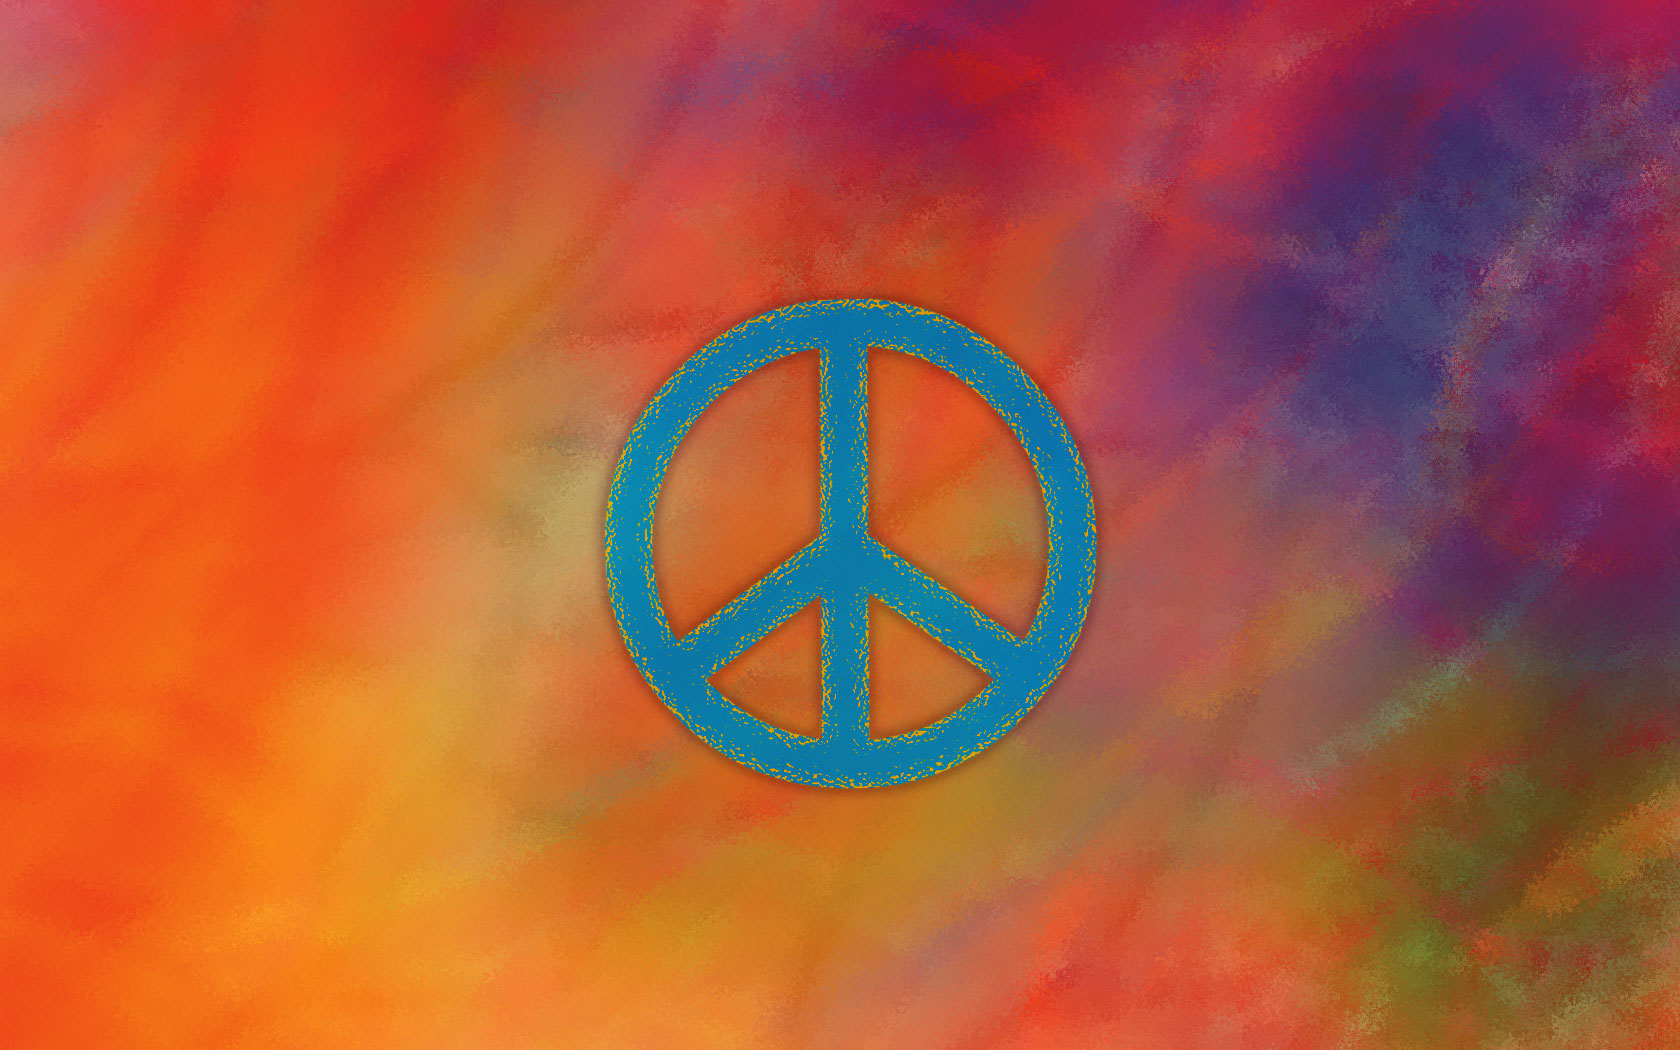 Yoga OM and Peace Symbol Wallpapers 1680x1050